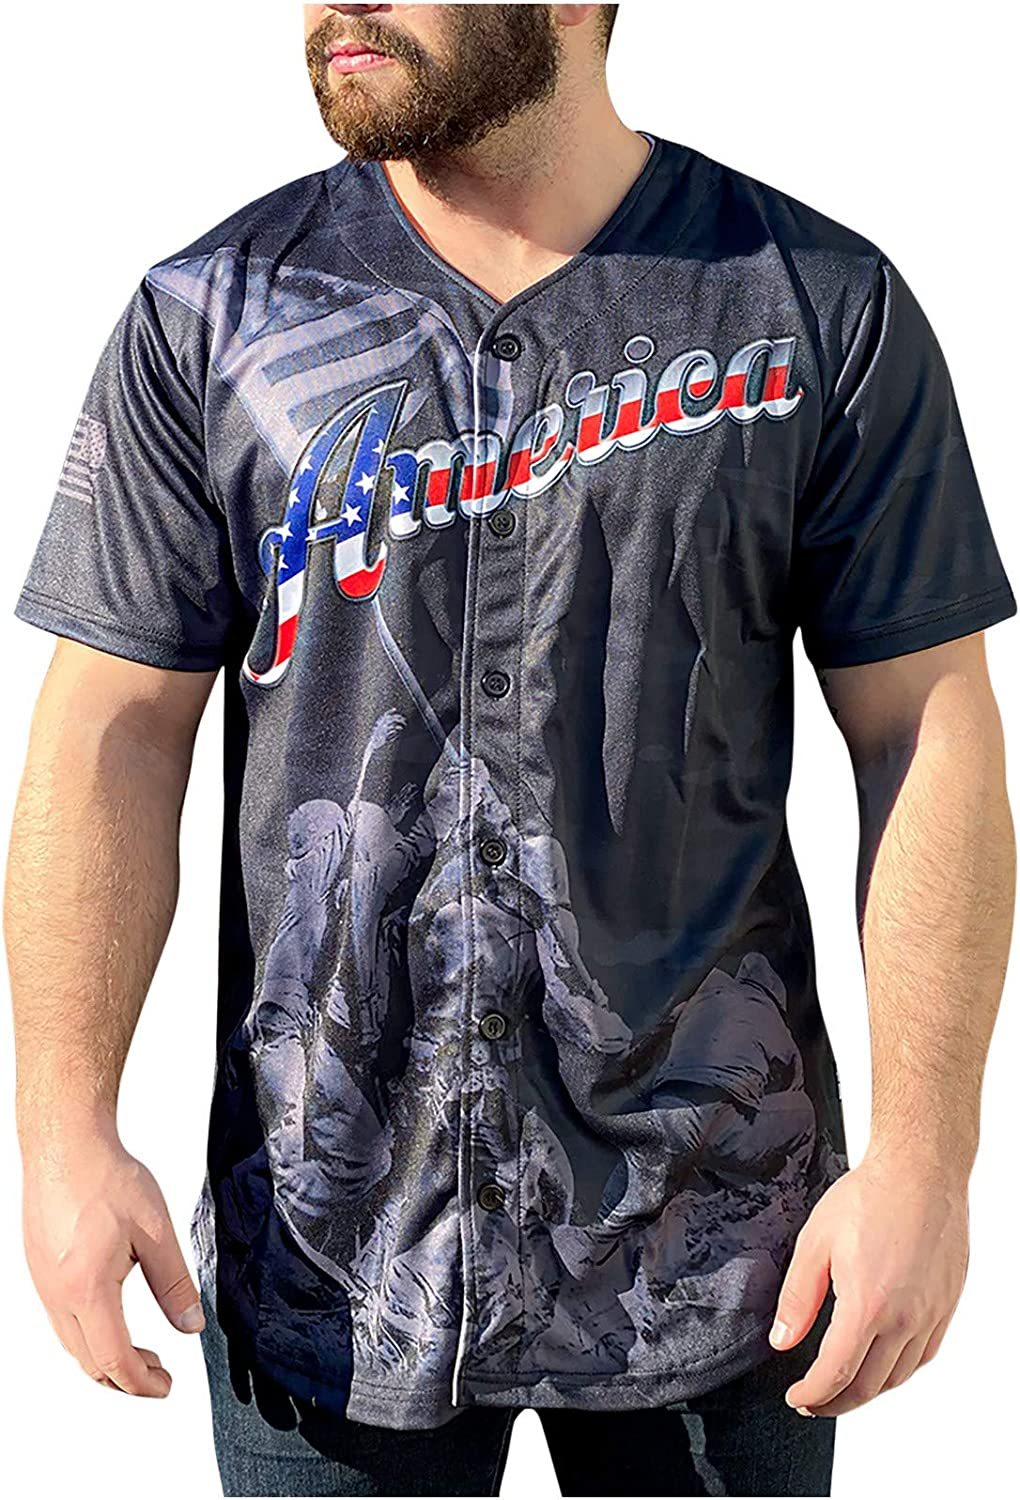 Unisex Men Women Vneck Button Down Shirts Short Sleeve Independence Day Printed Pattern Cardigan Casual Henley Tshirt